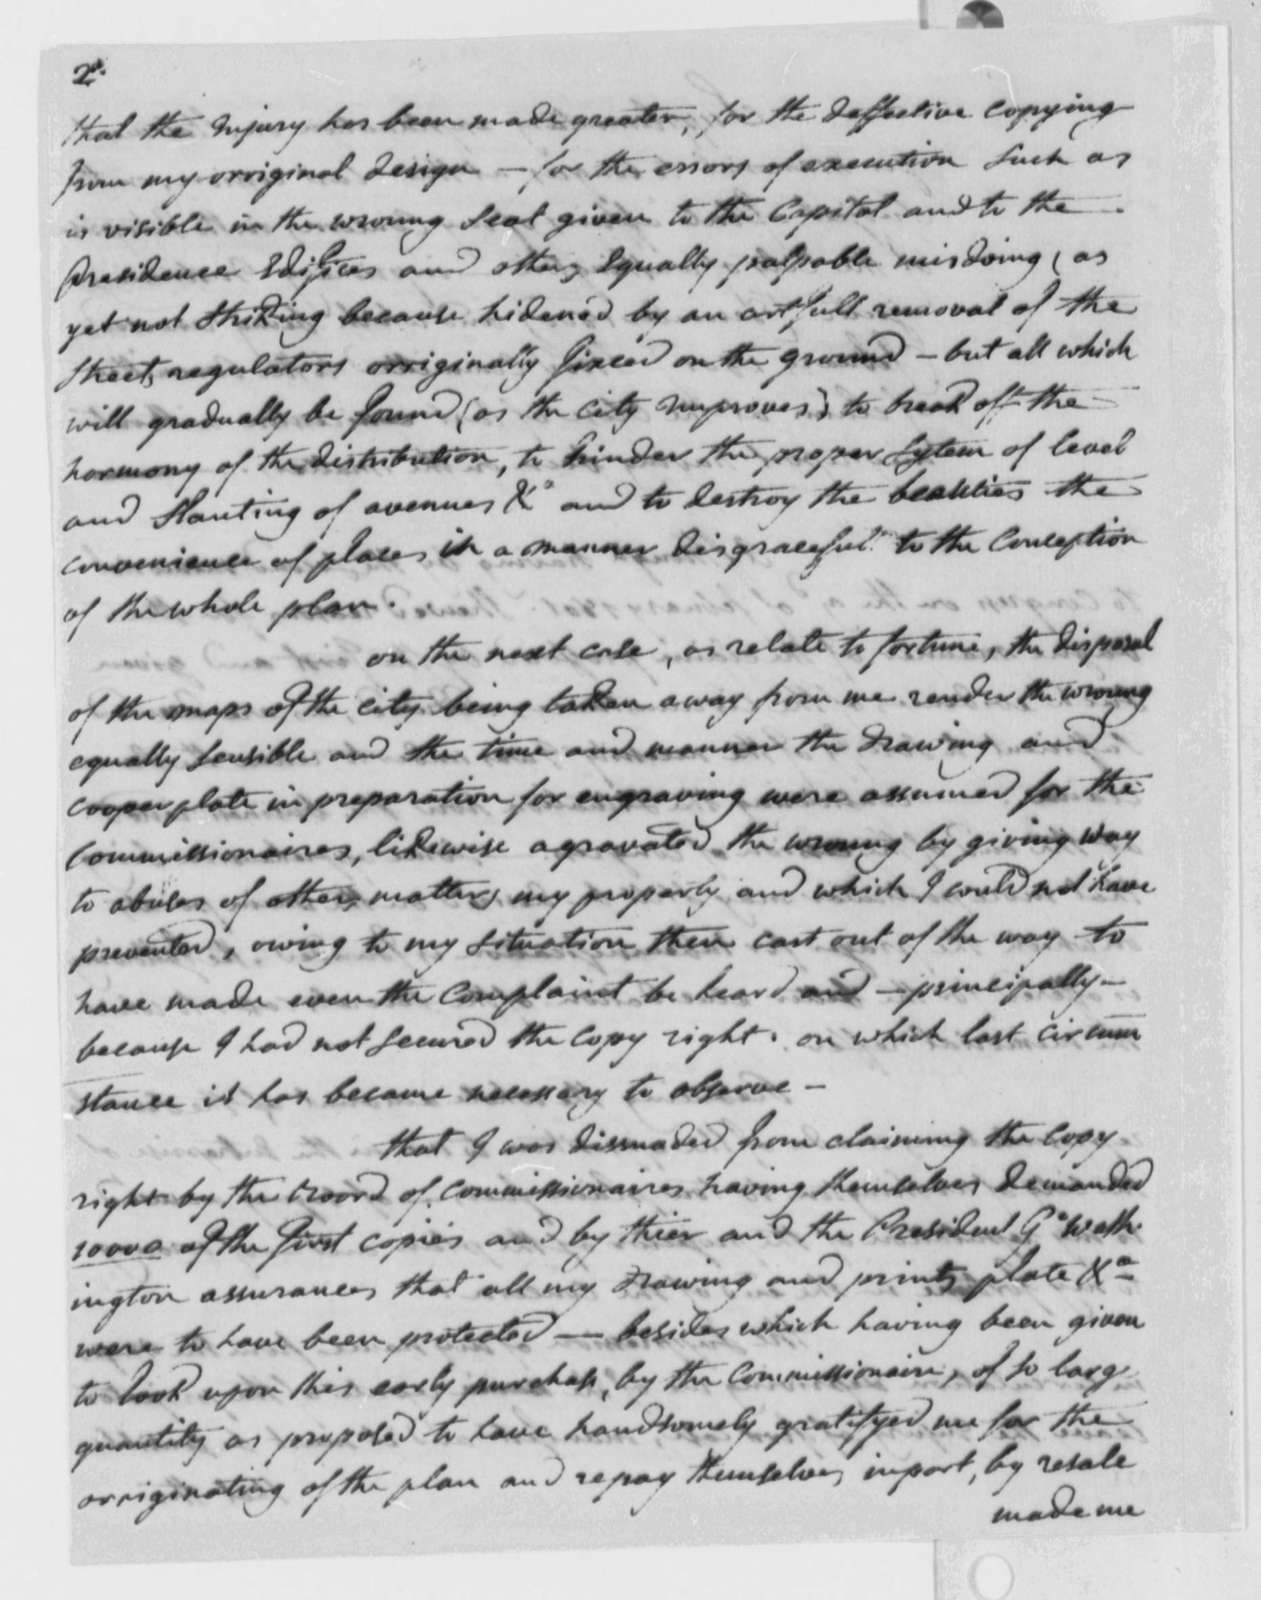 Peter Charles L' Enfant to Thomas Jefferson, March 12, 1802, with Memorial